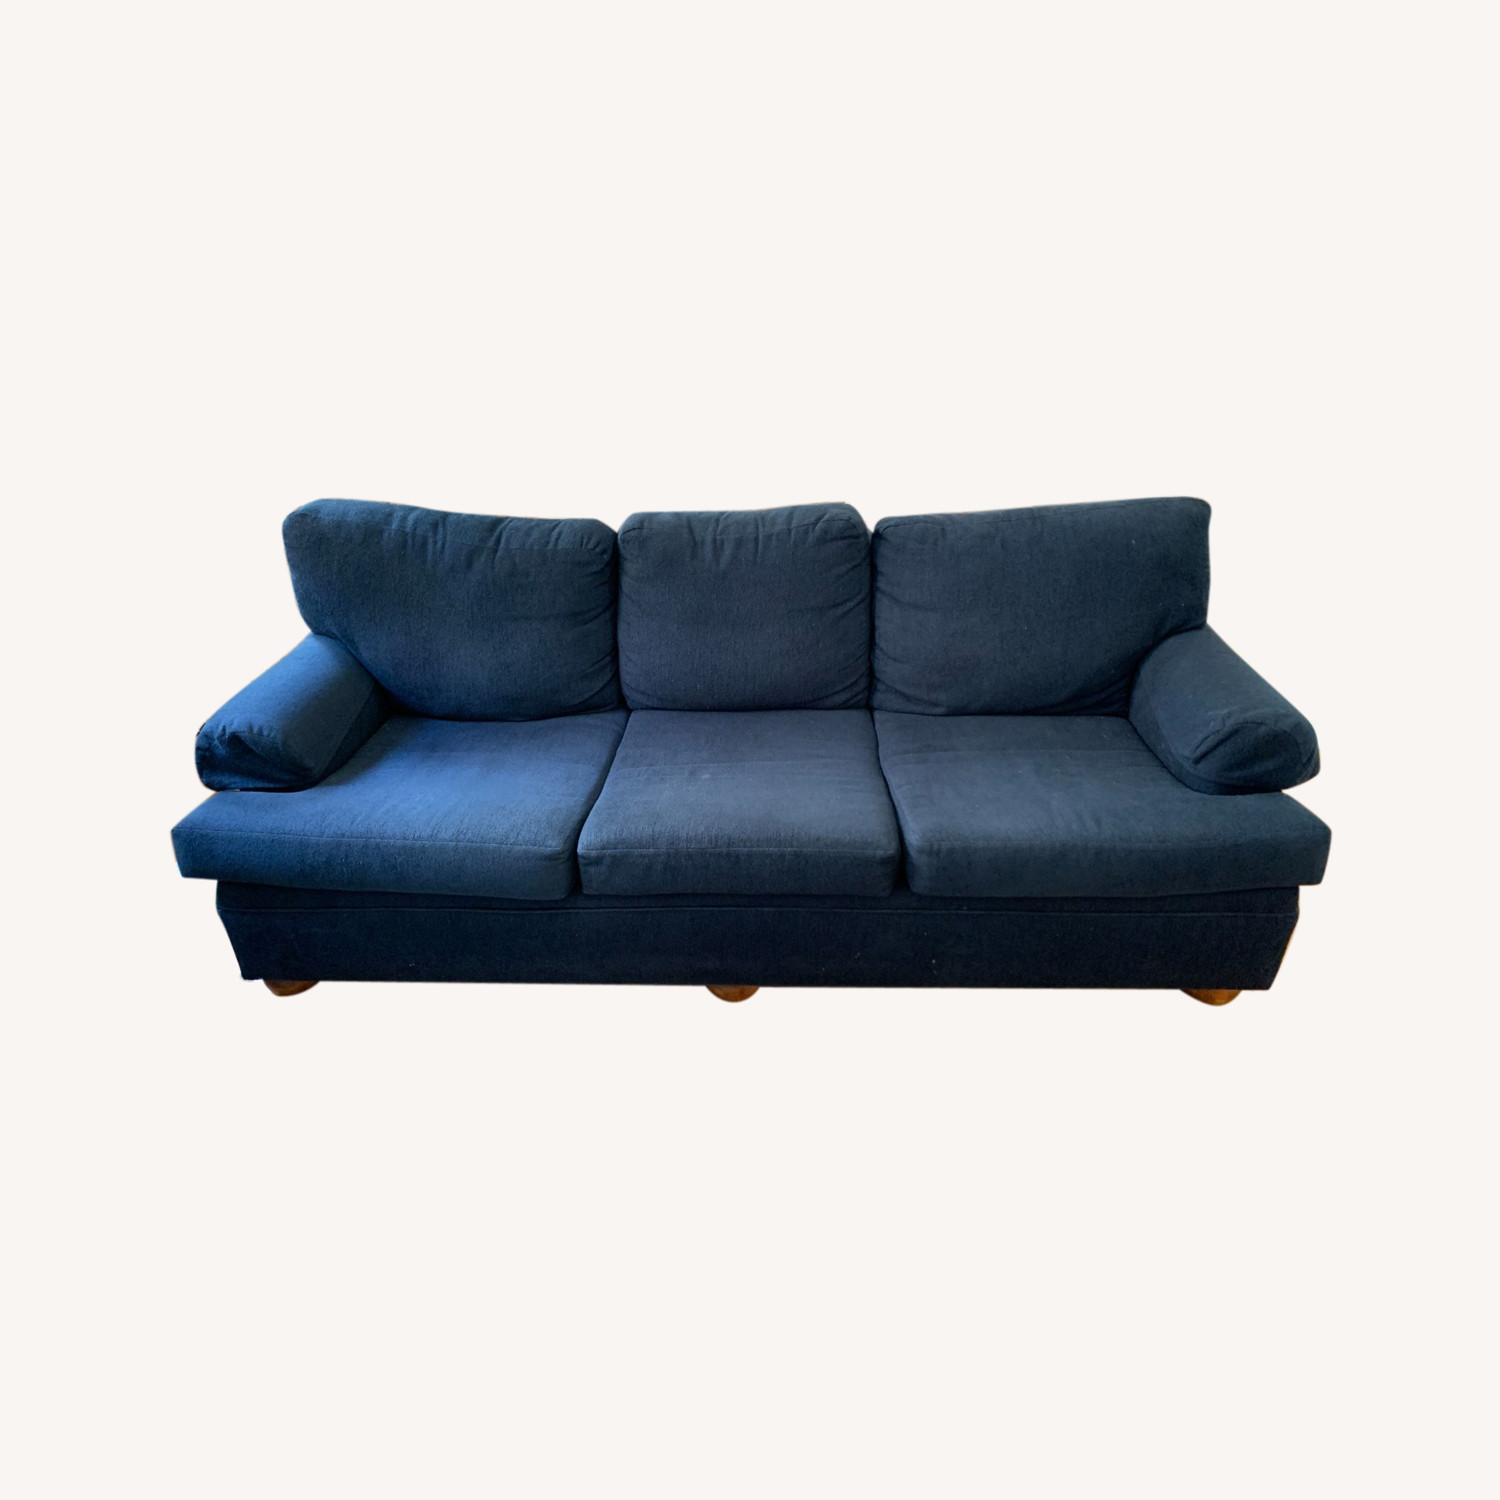 Ethan Allen Couch - image-0